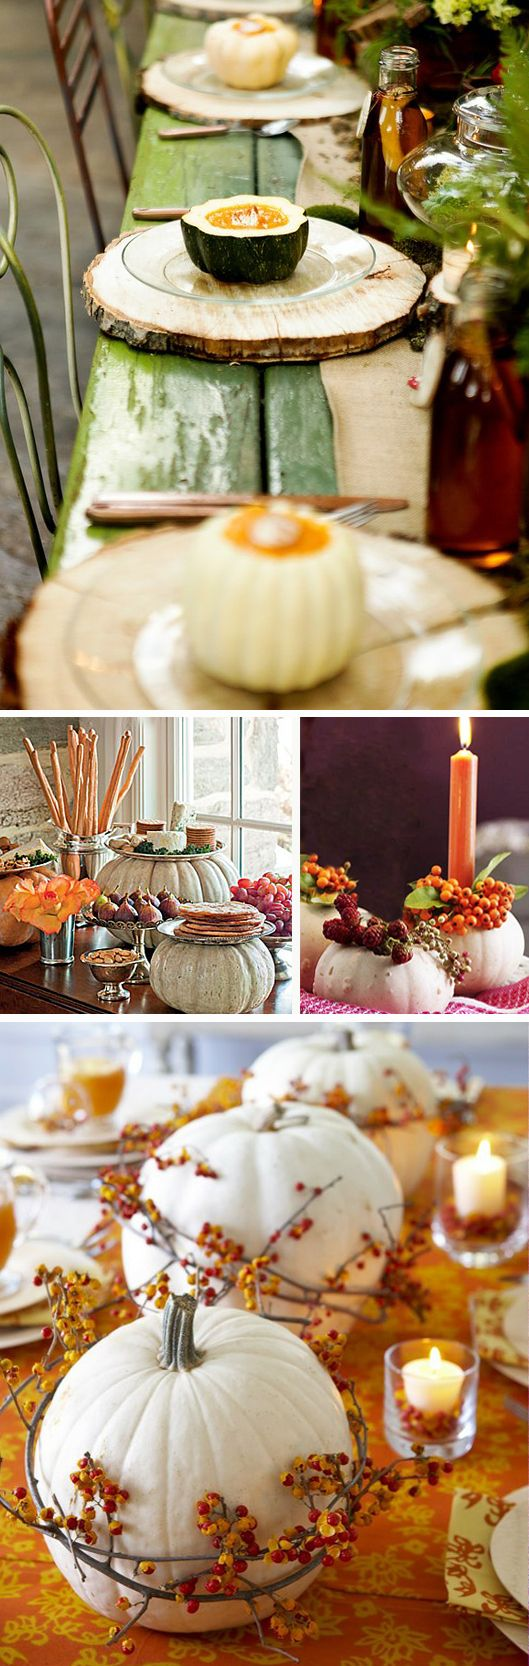 autumn wedding decor best 20 pumpkin table decorations ideas on 1400